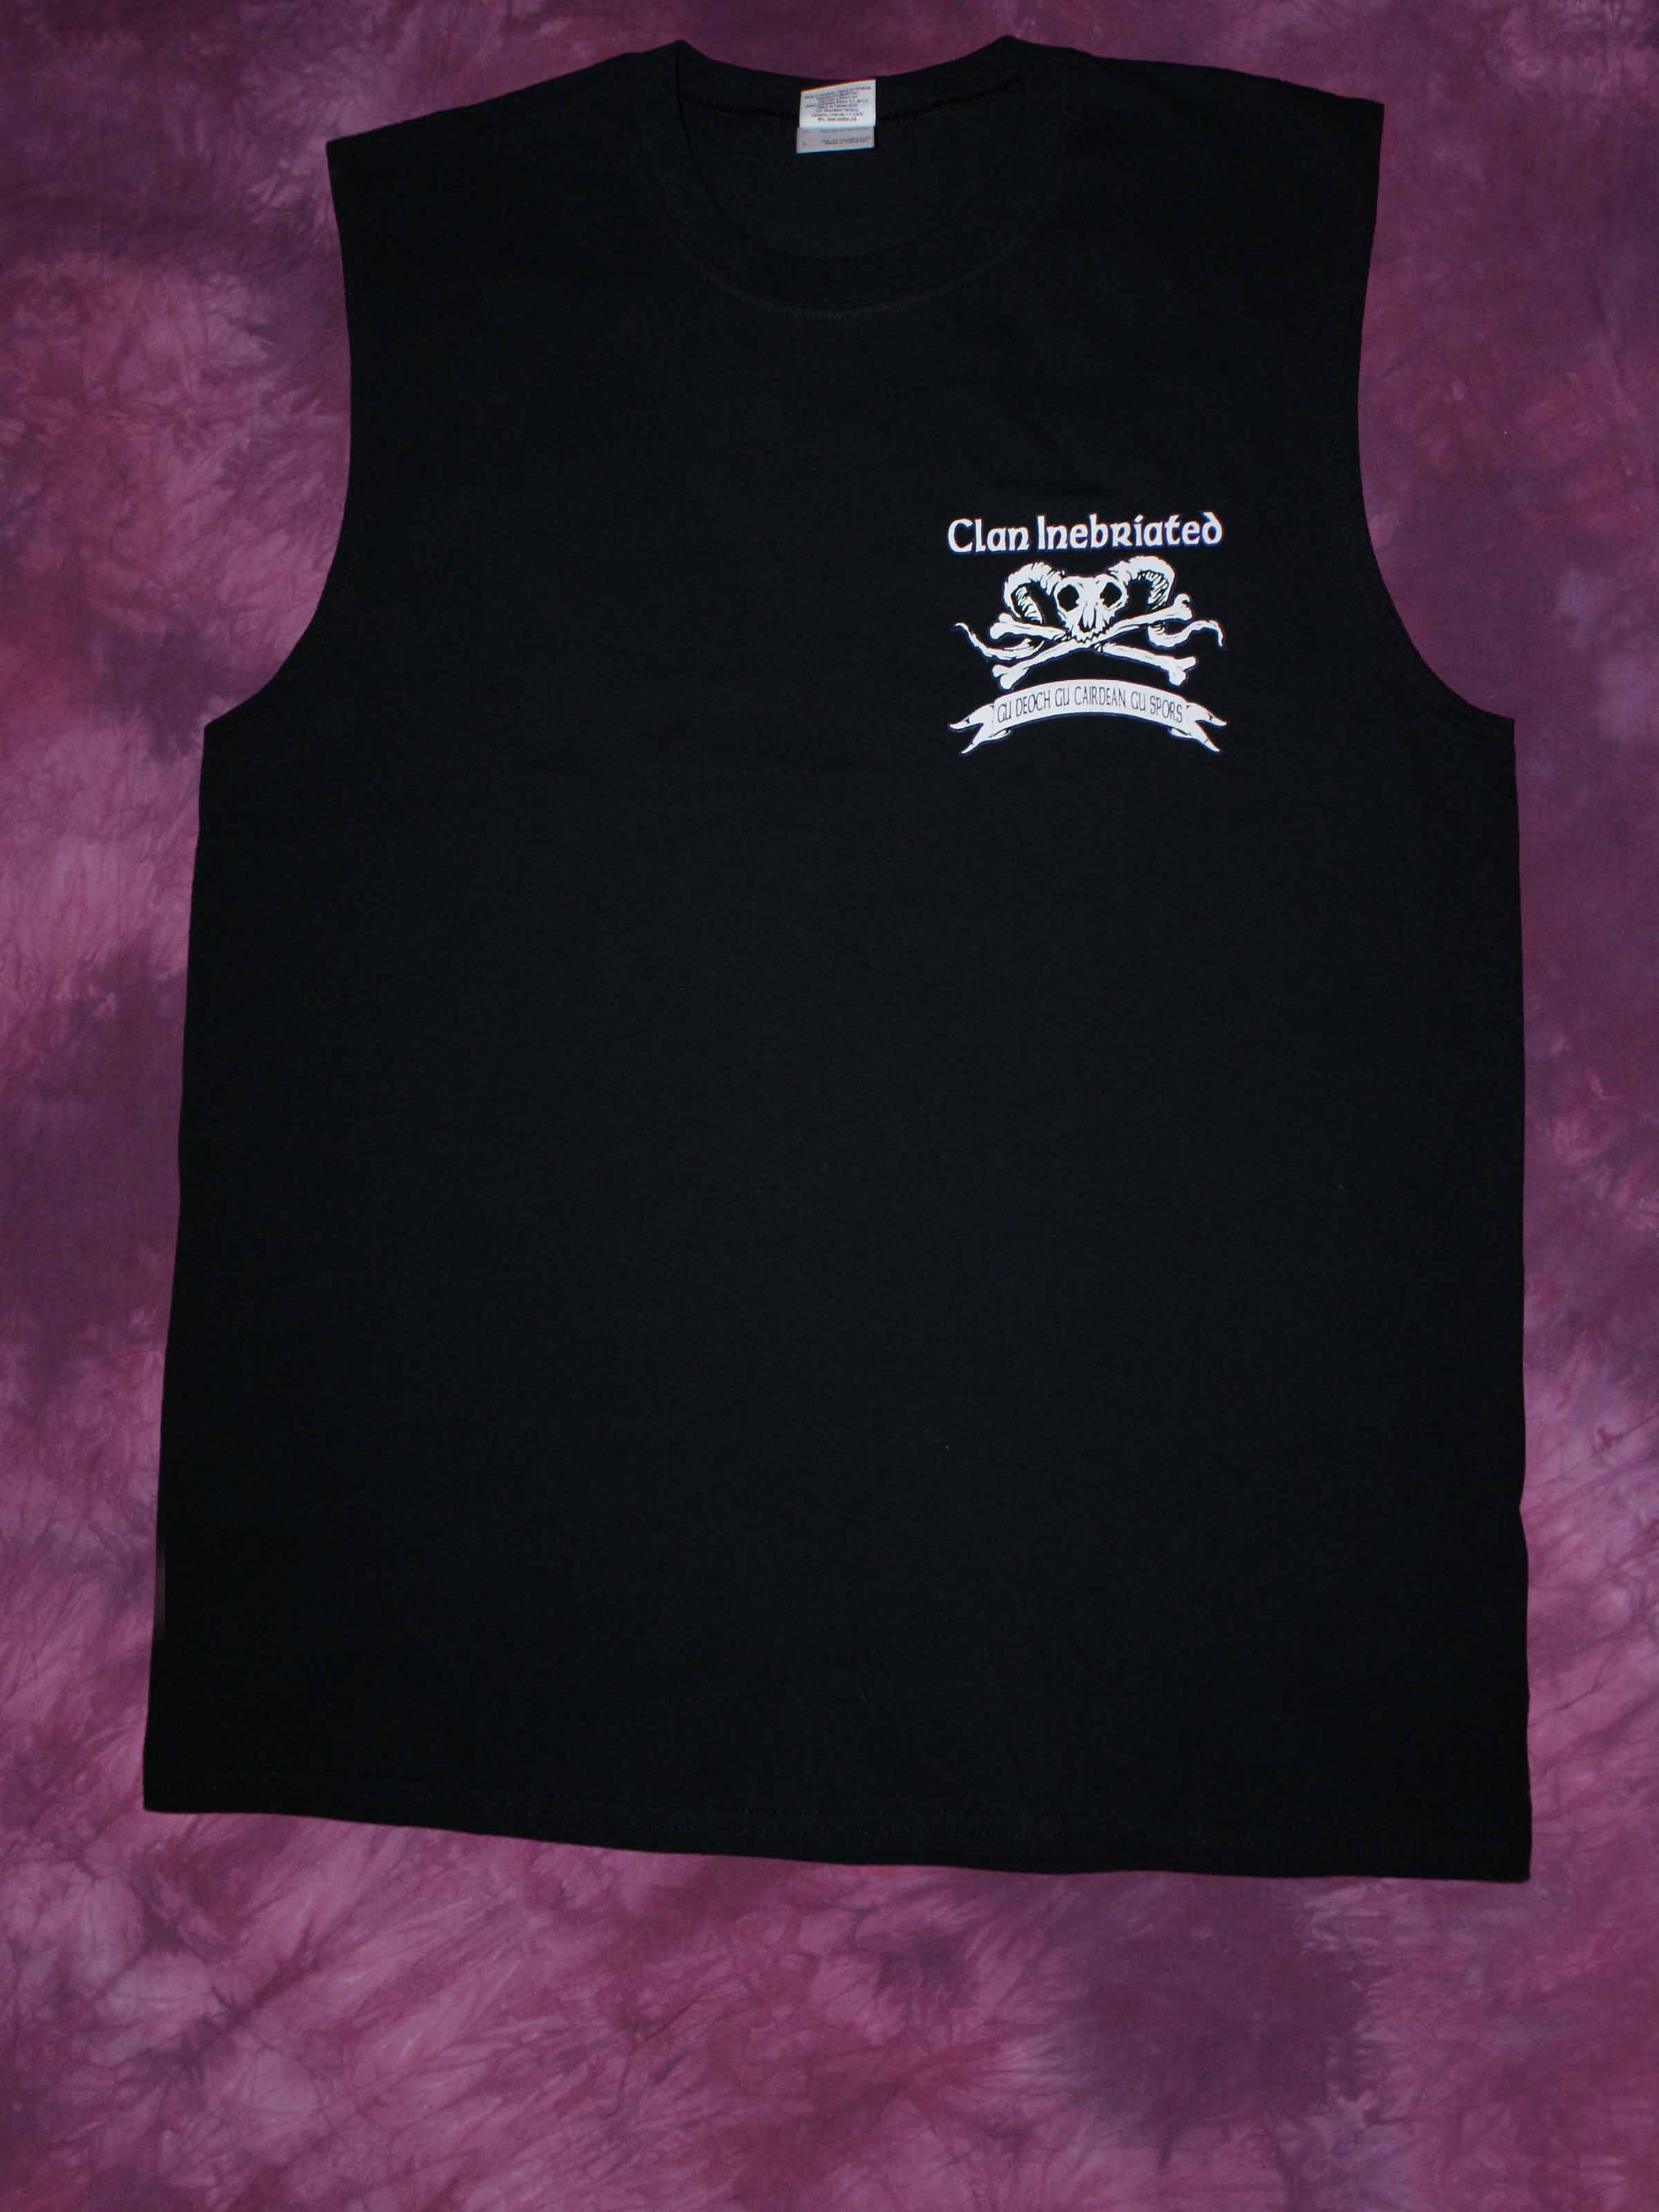 Clan Inebriated Skull and Bones Men's Muscle Shirt